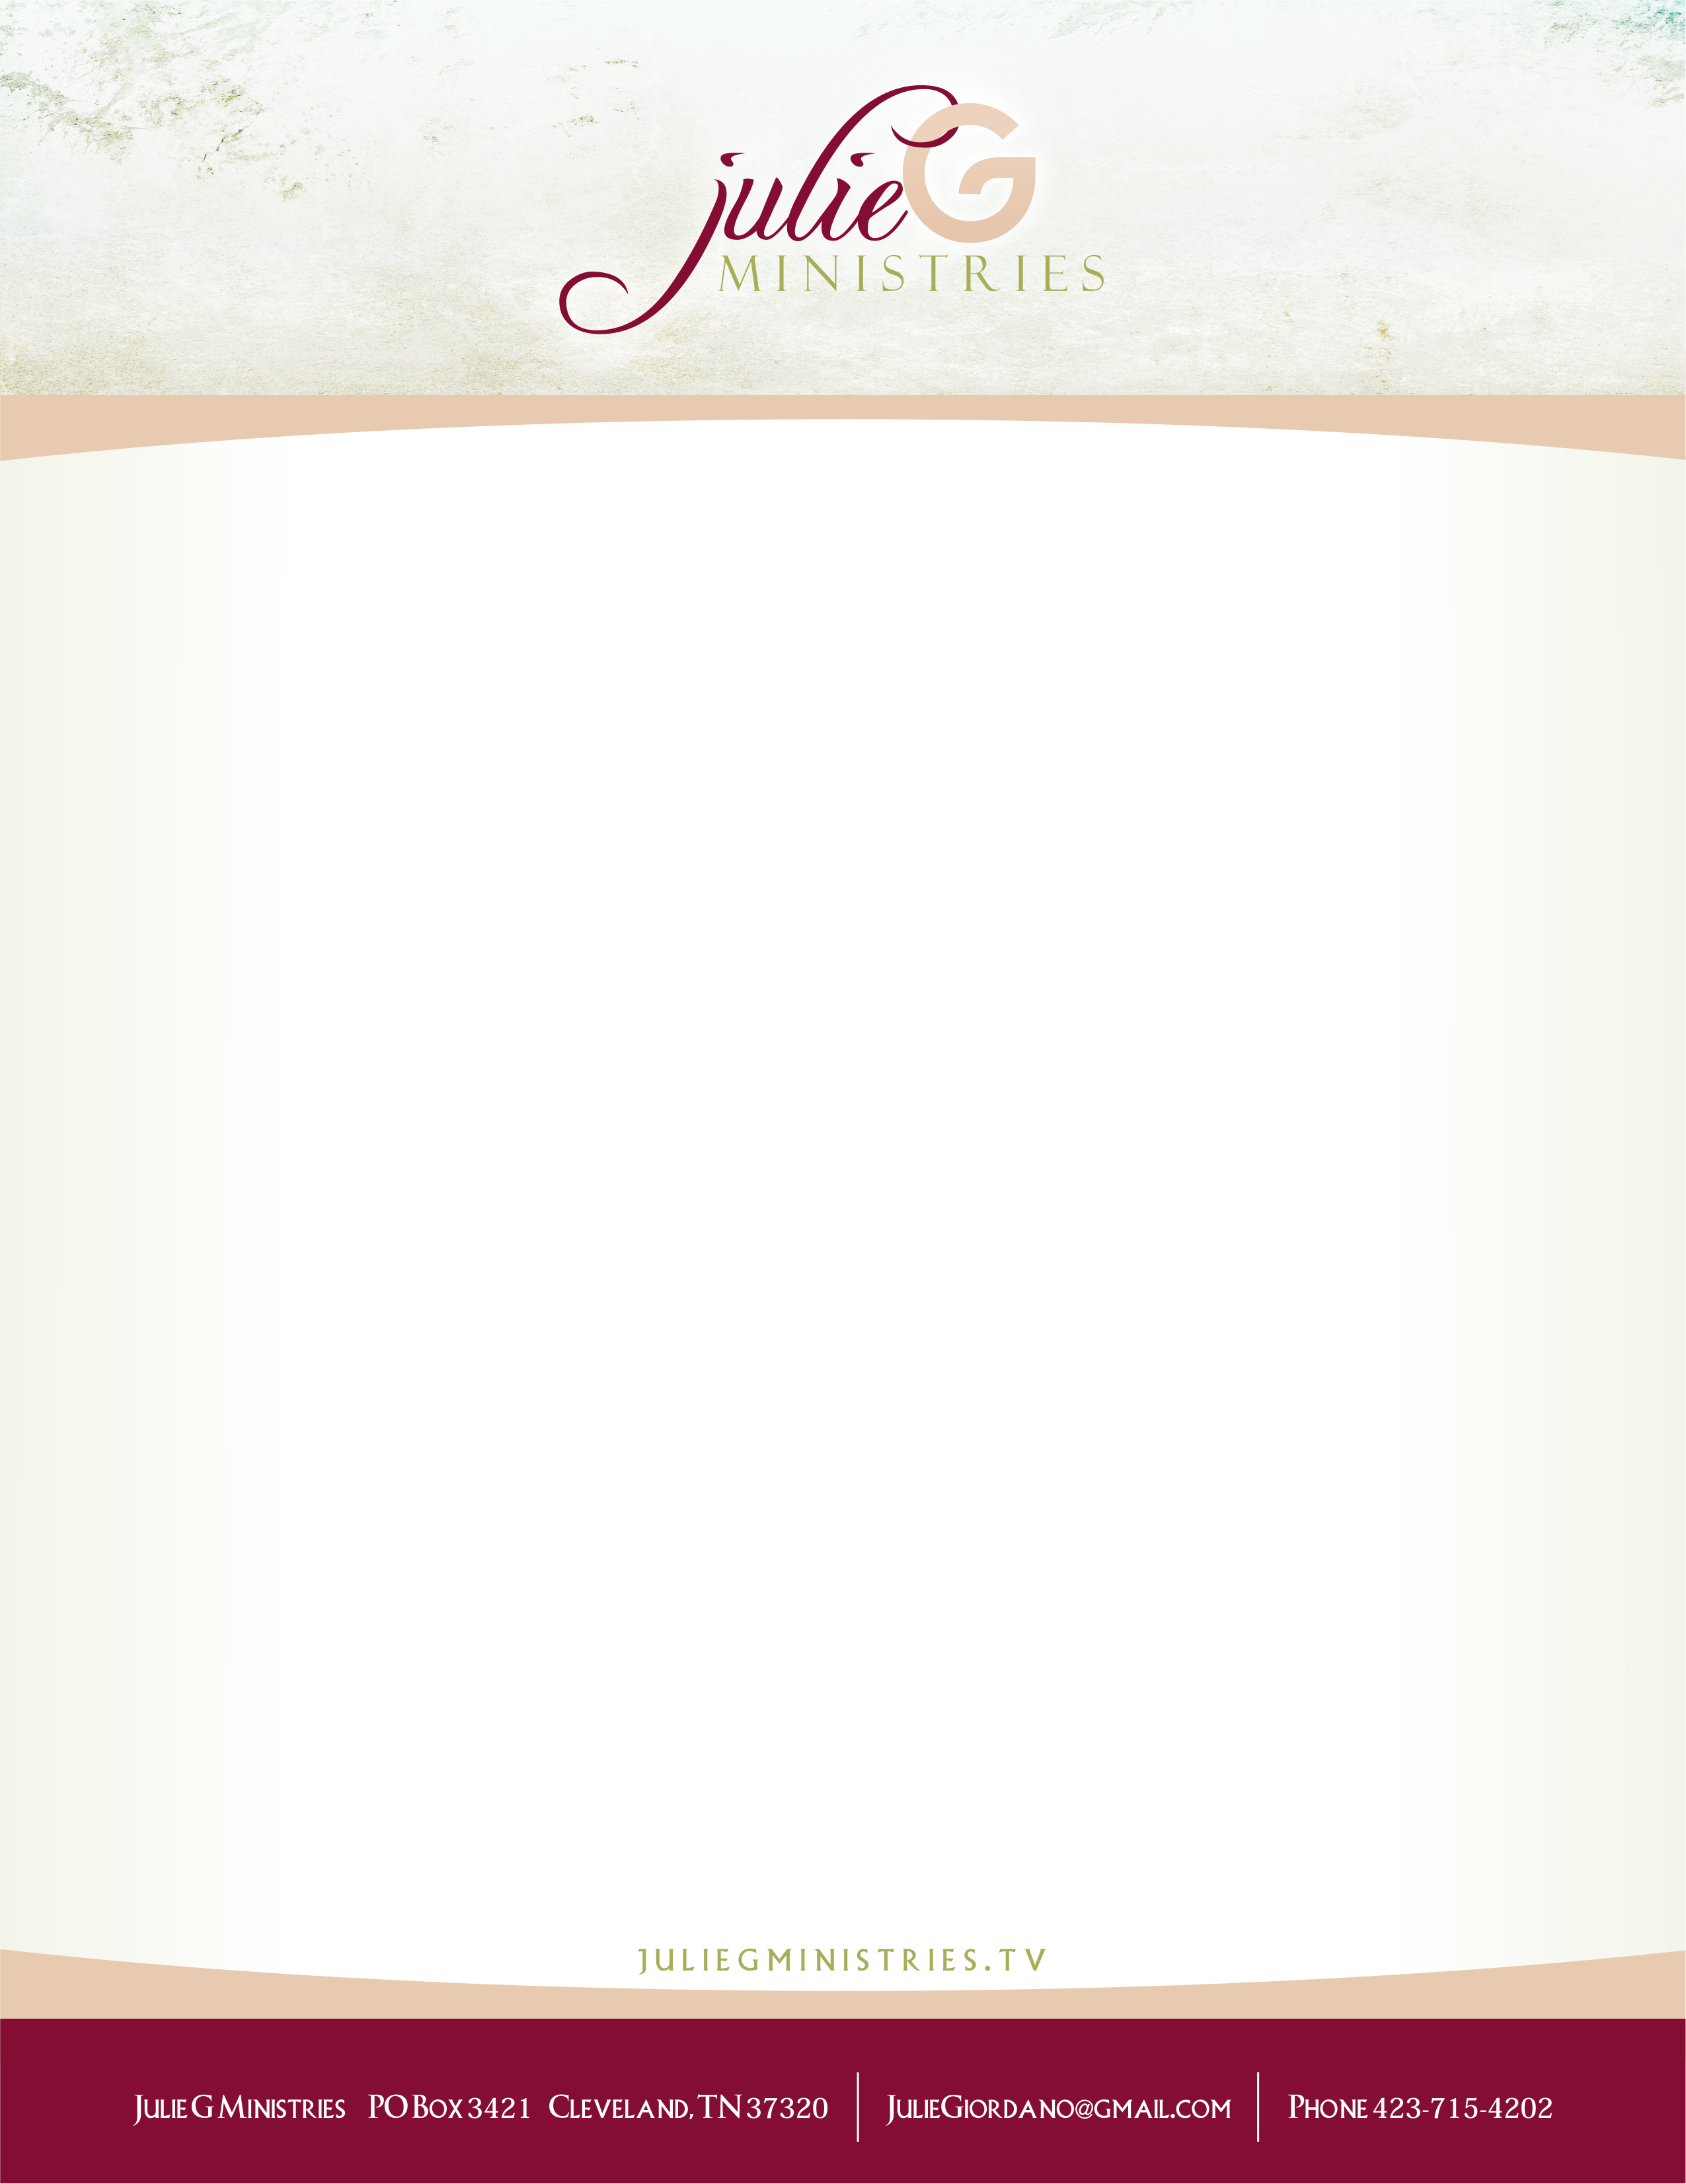 Julie G Ministries - Stationary Print File